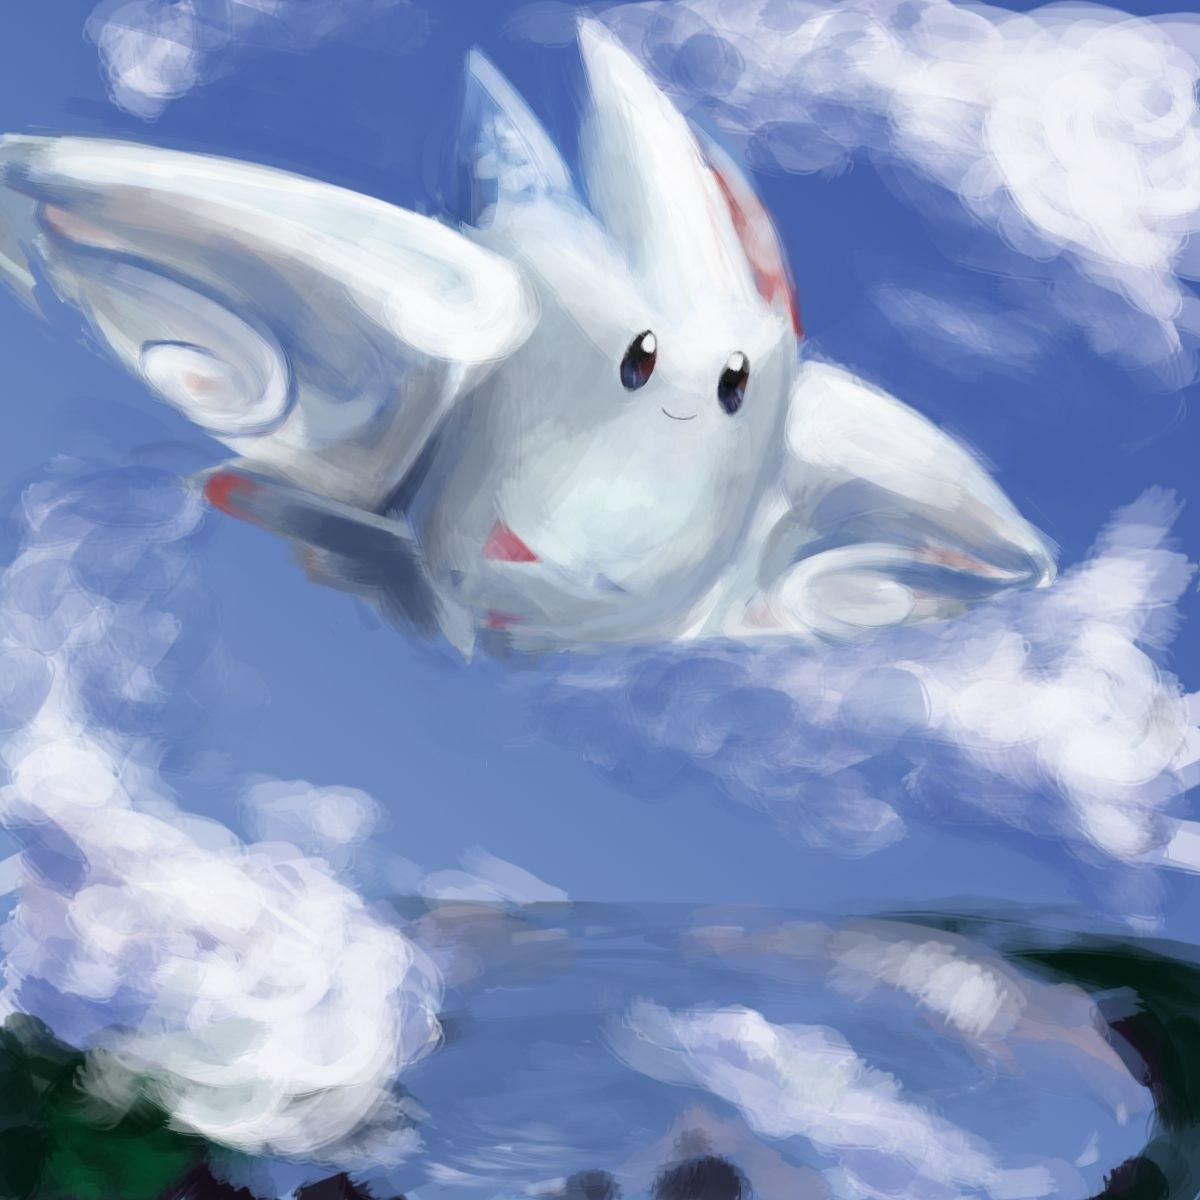 Togepi images Togekiss HD wallpaper and background photos (10404745)